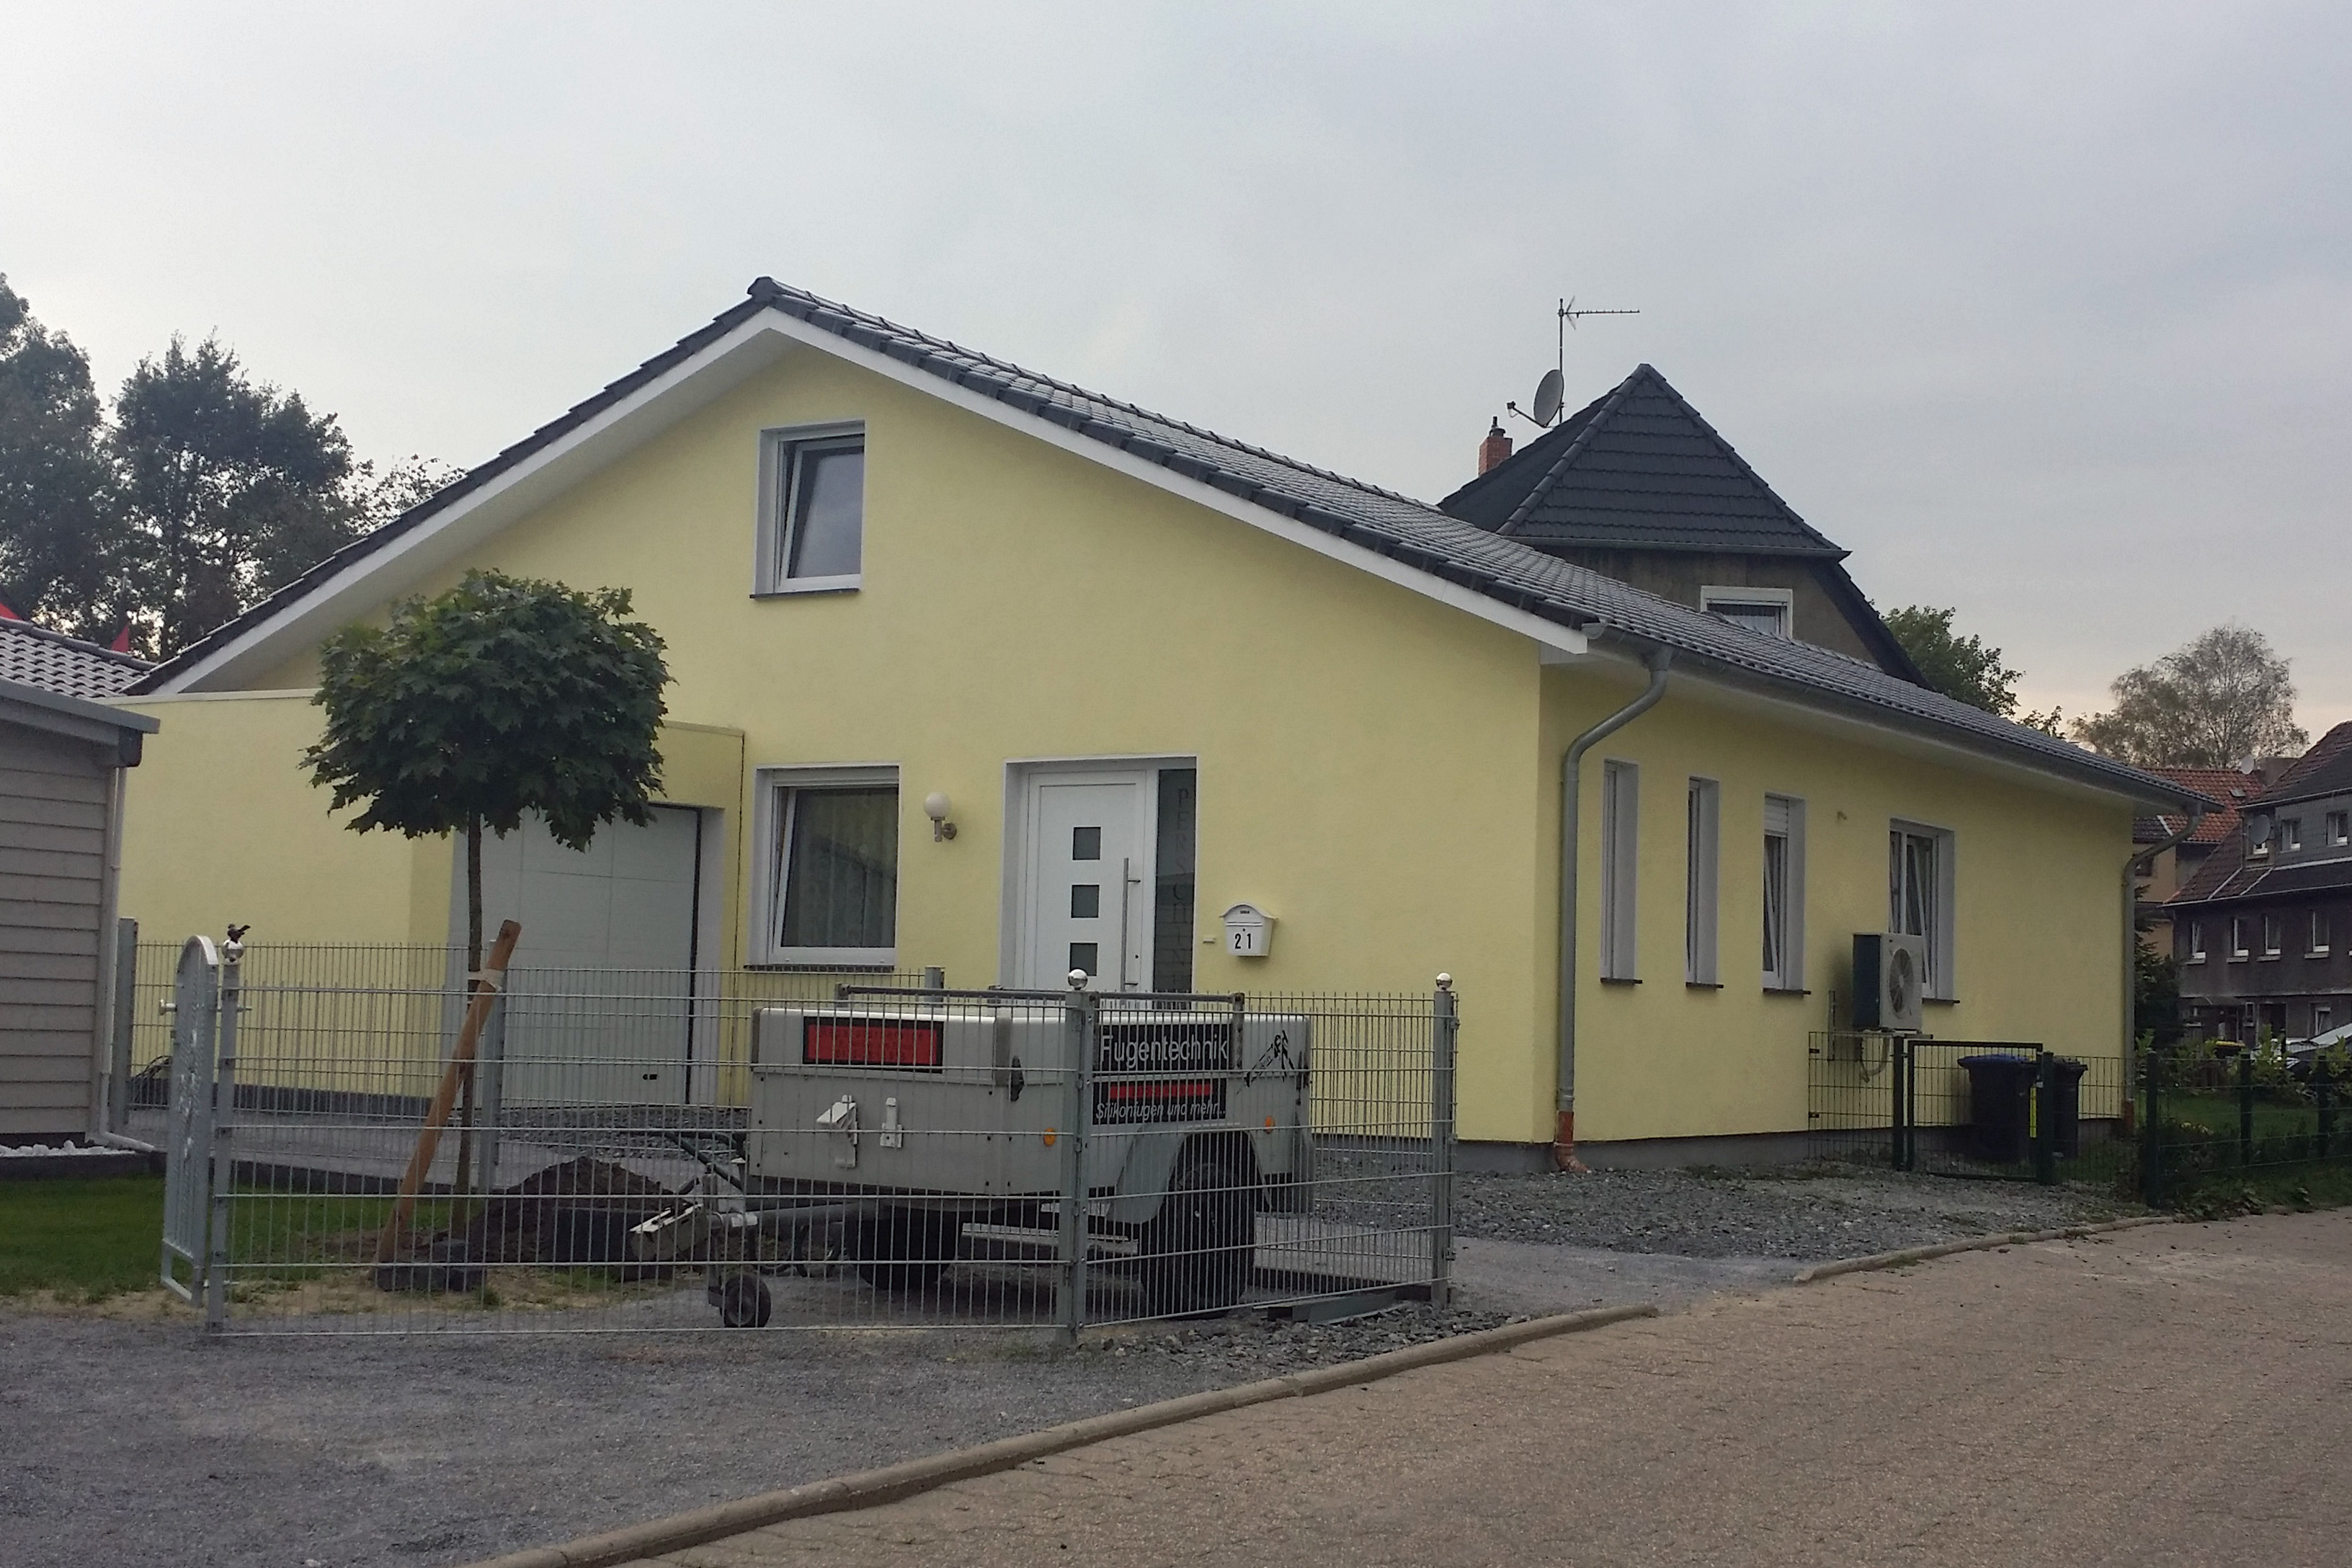 Bungalow in Datteln